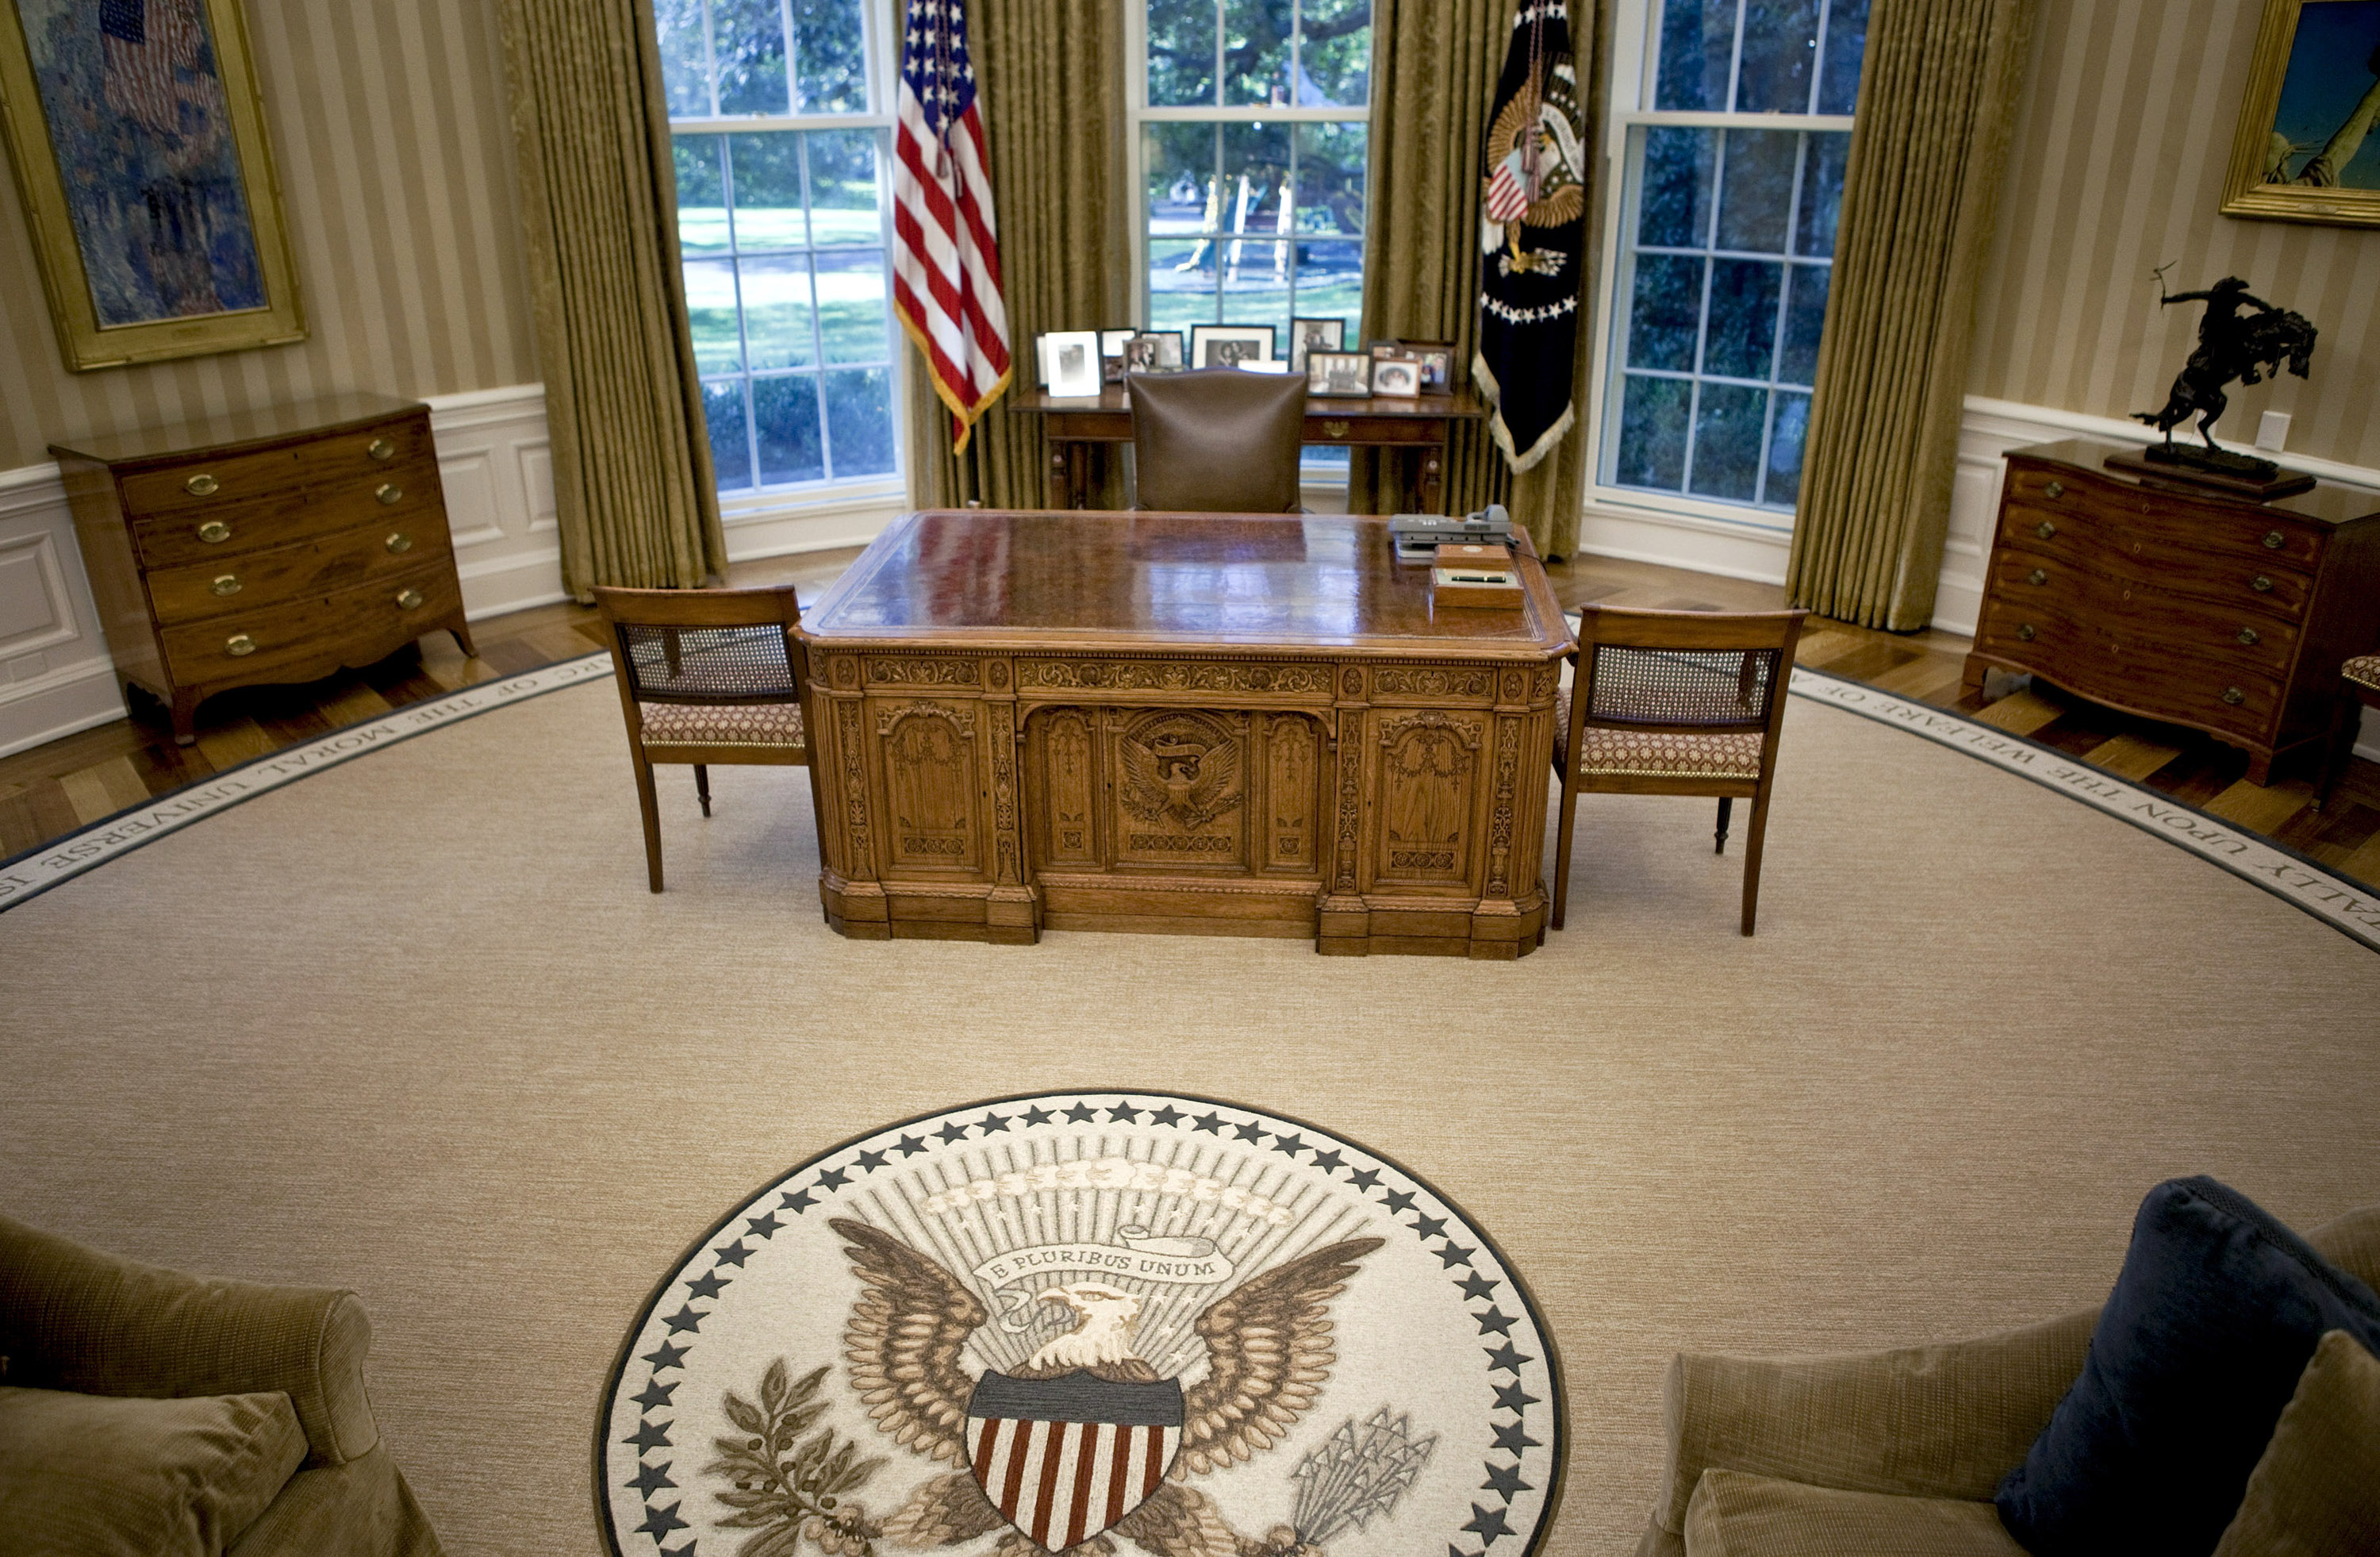 oval office picture. Oval Office Picture B